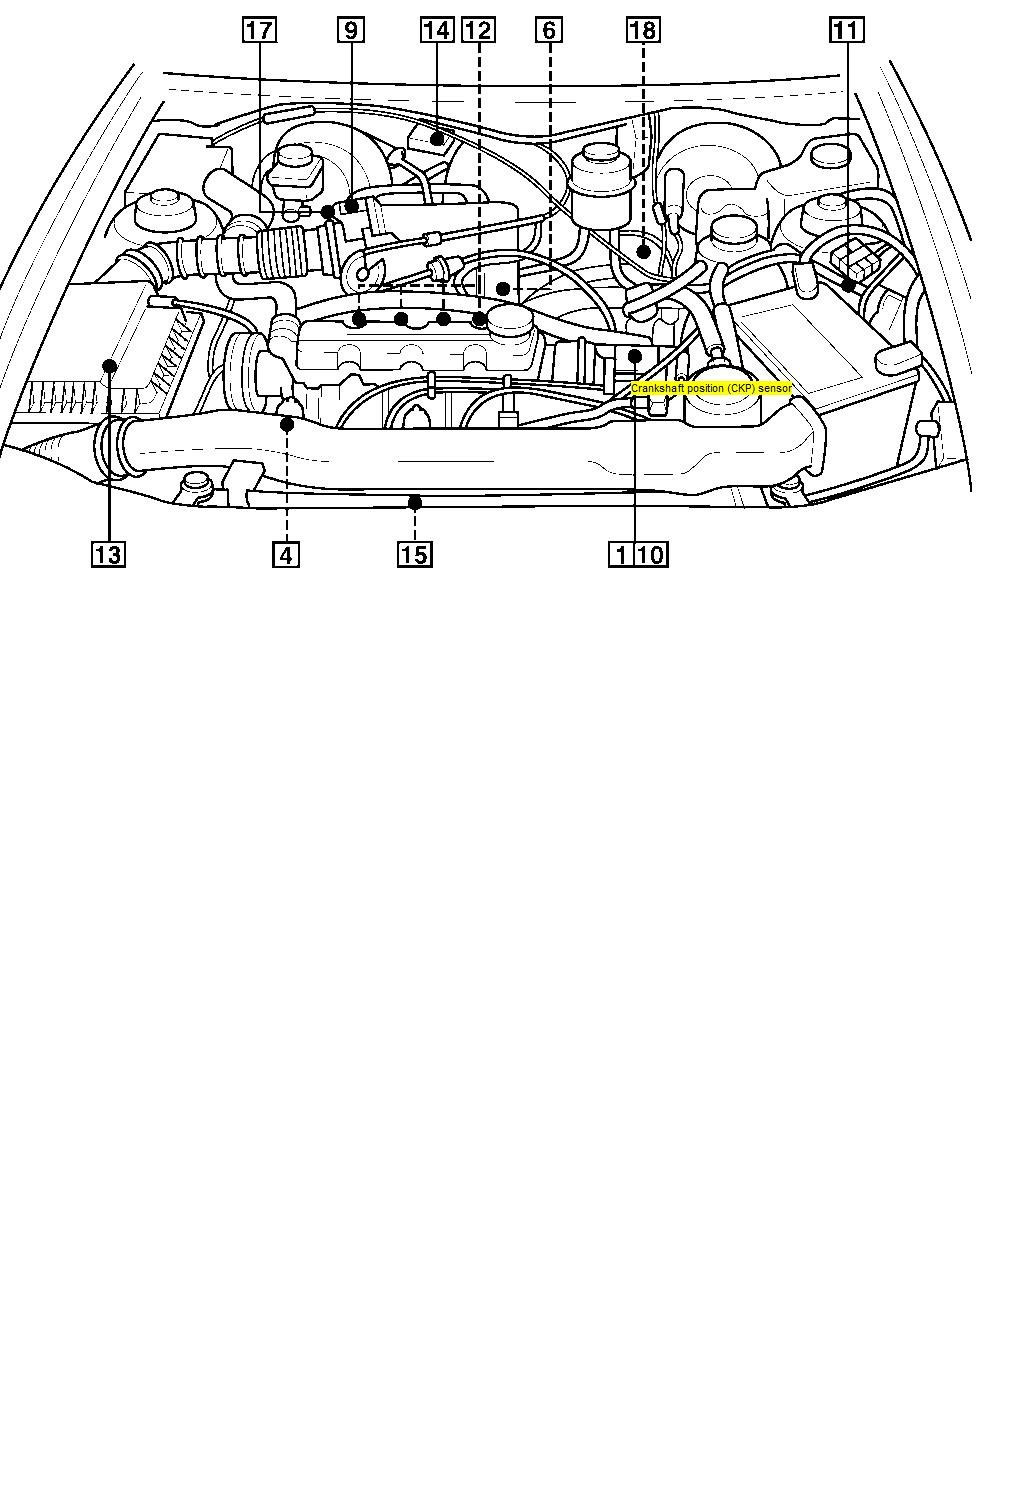 I have just repaced a clutch in a daewoo cielo 97 model pluged in